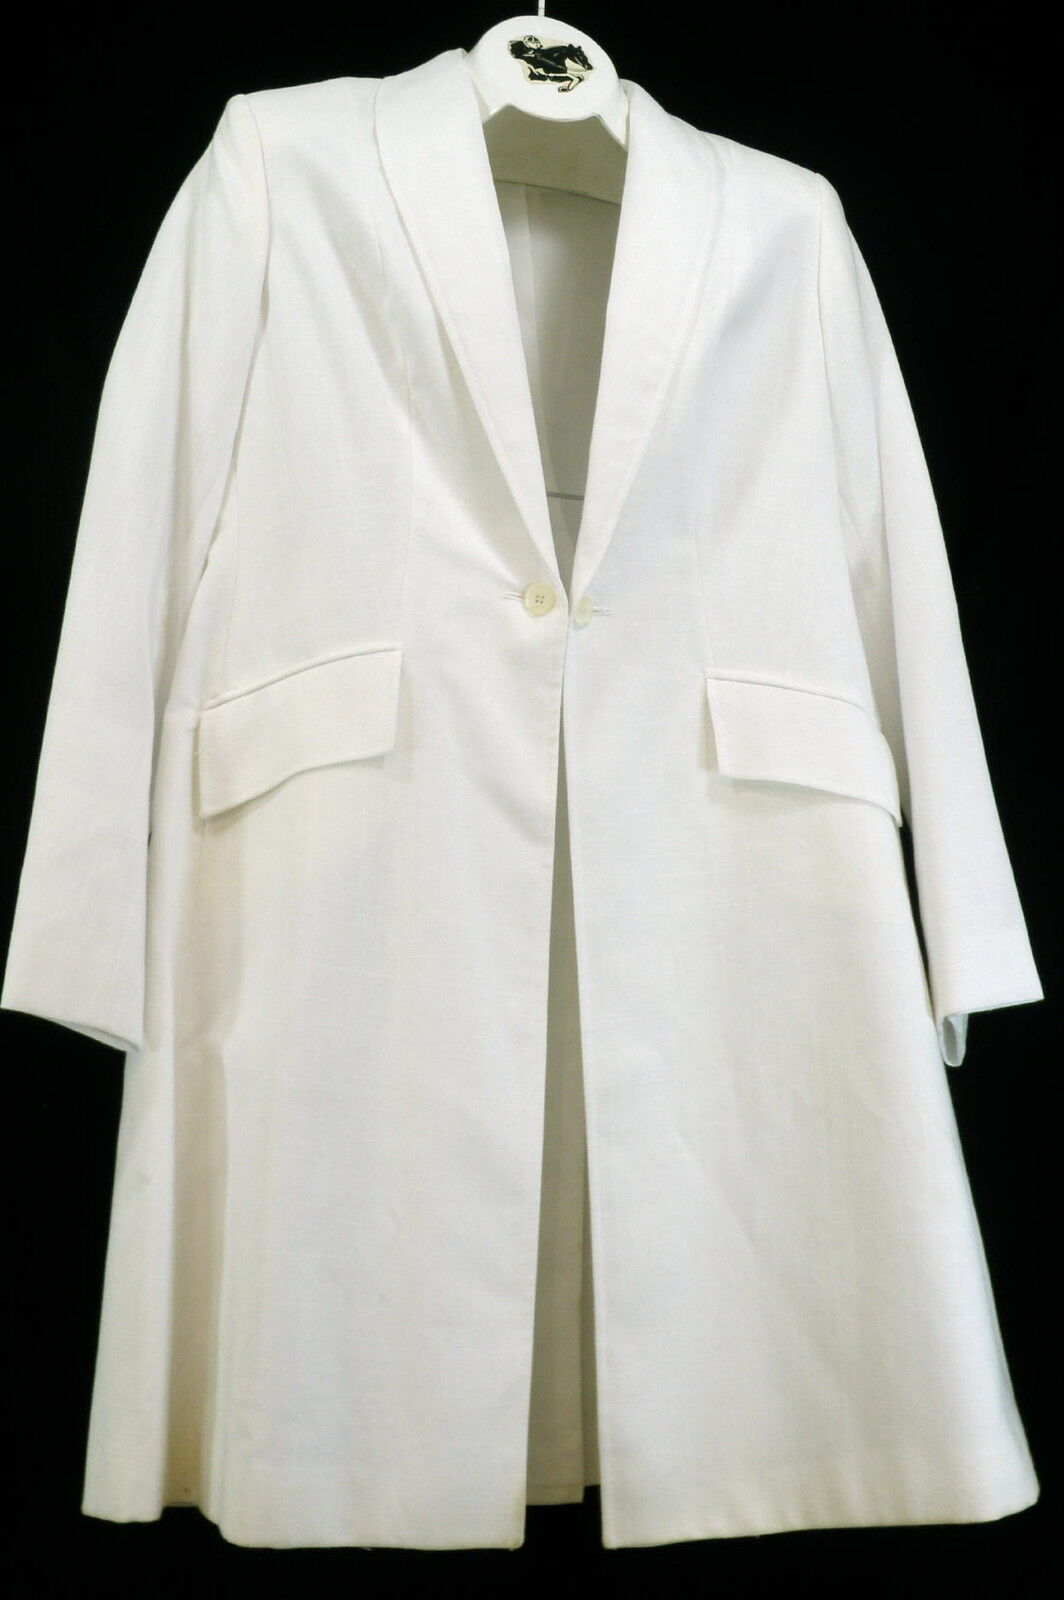 Reed Hill  Ladies Saddleseat Day Coat White Linen Blend size 14 - USA  retail stores